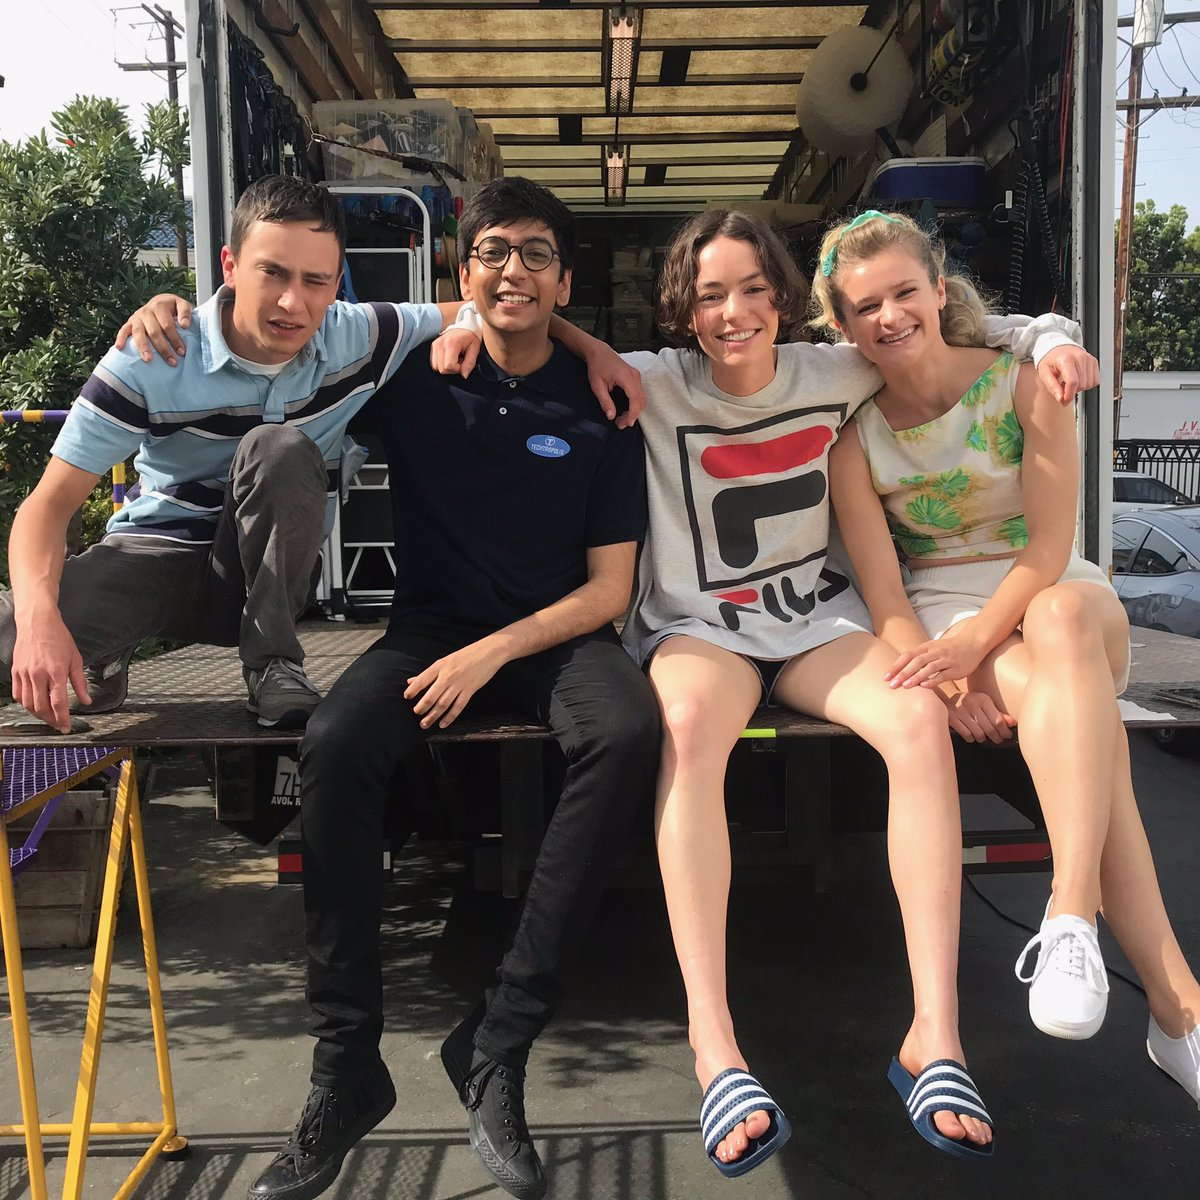 Back in production just in time for #WorldAutismAwarenessDay 💙 Who's excited for Atypical Season 3?